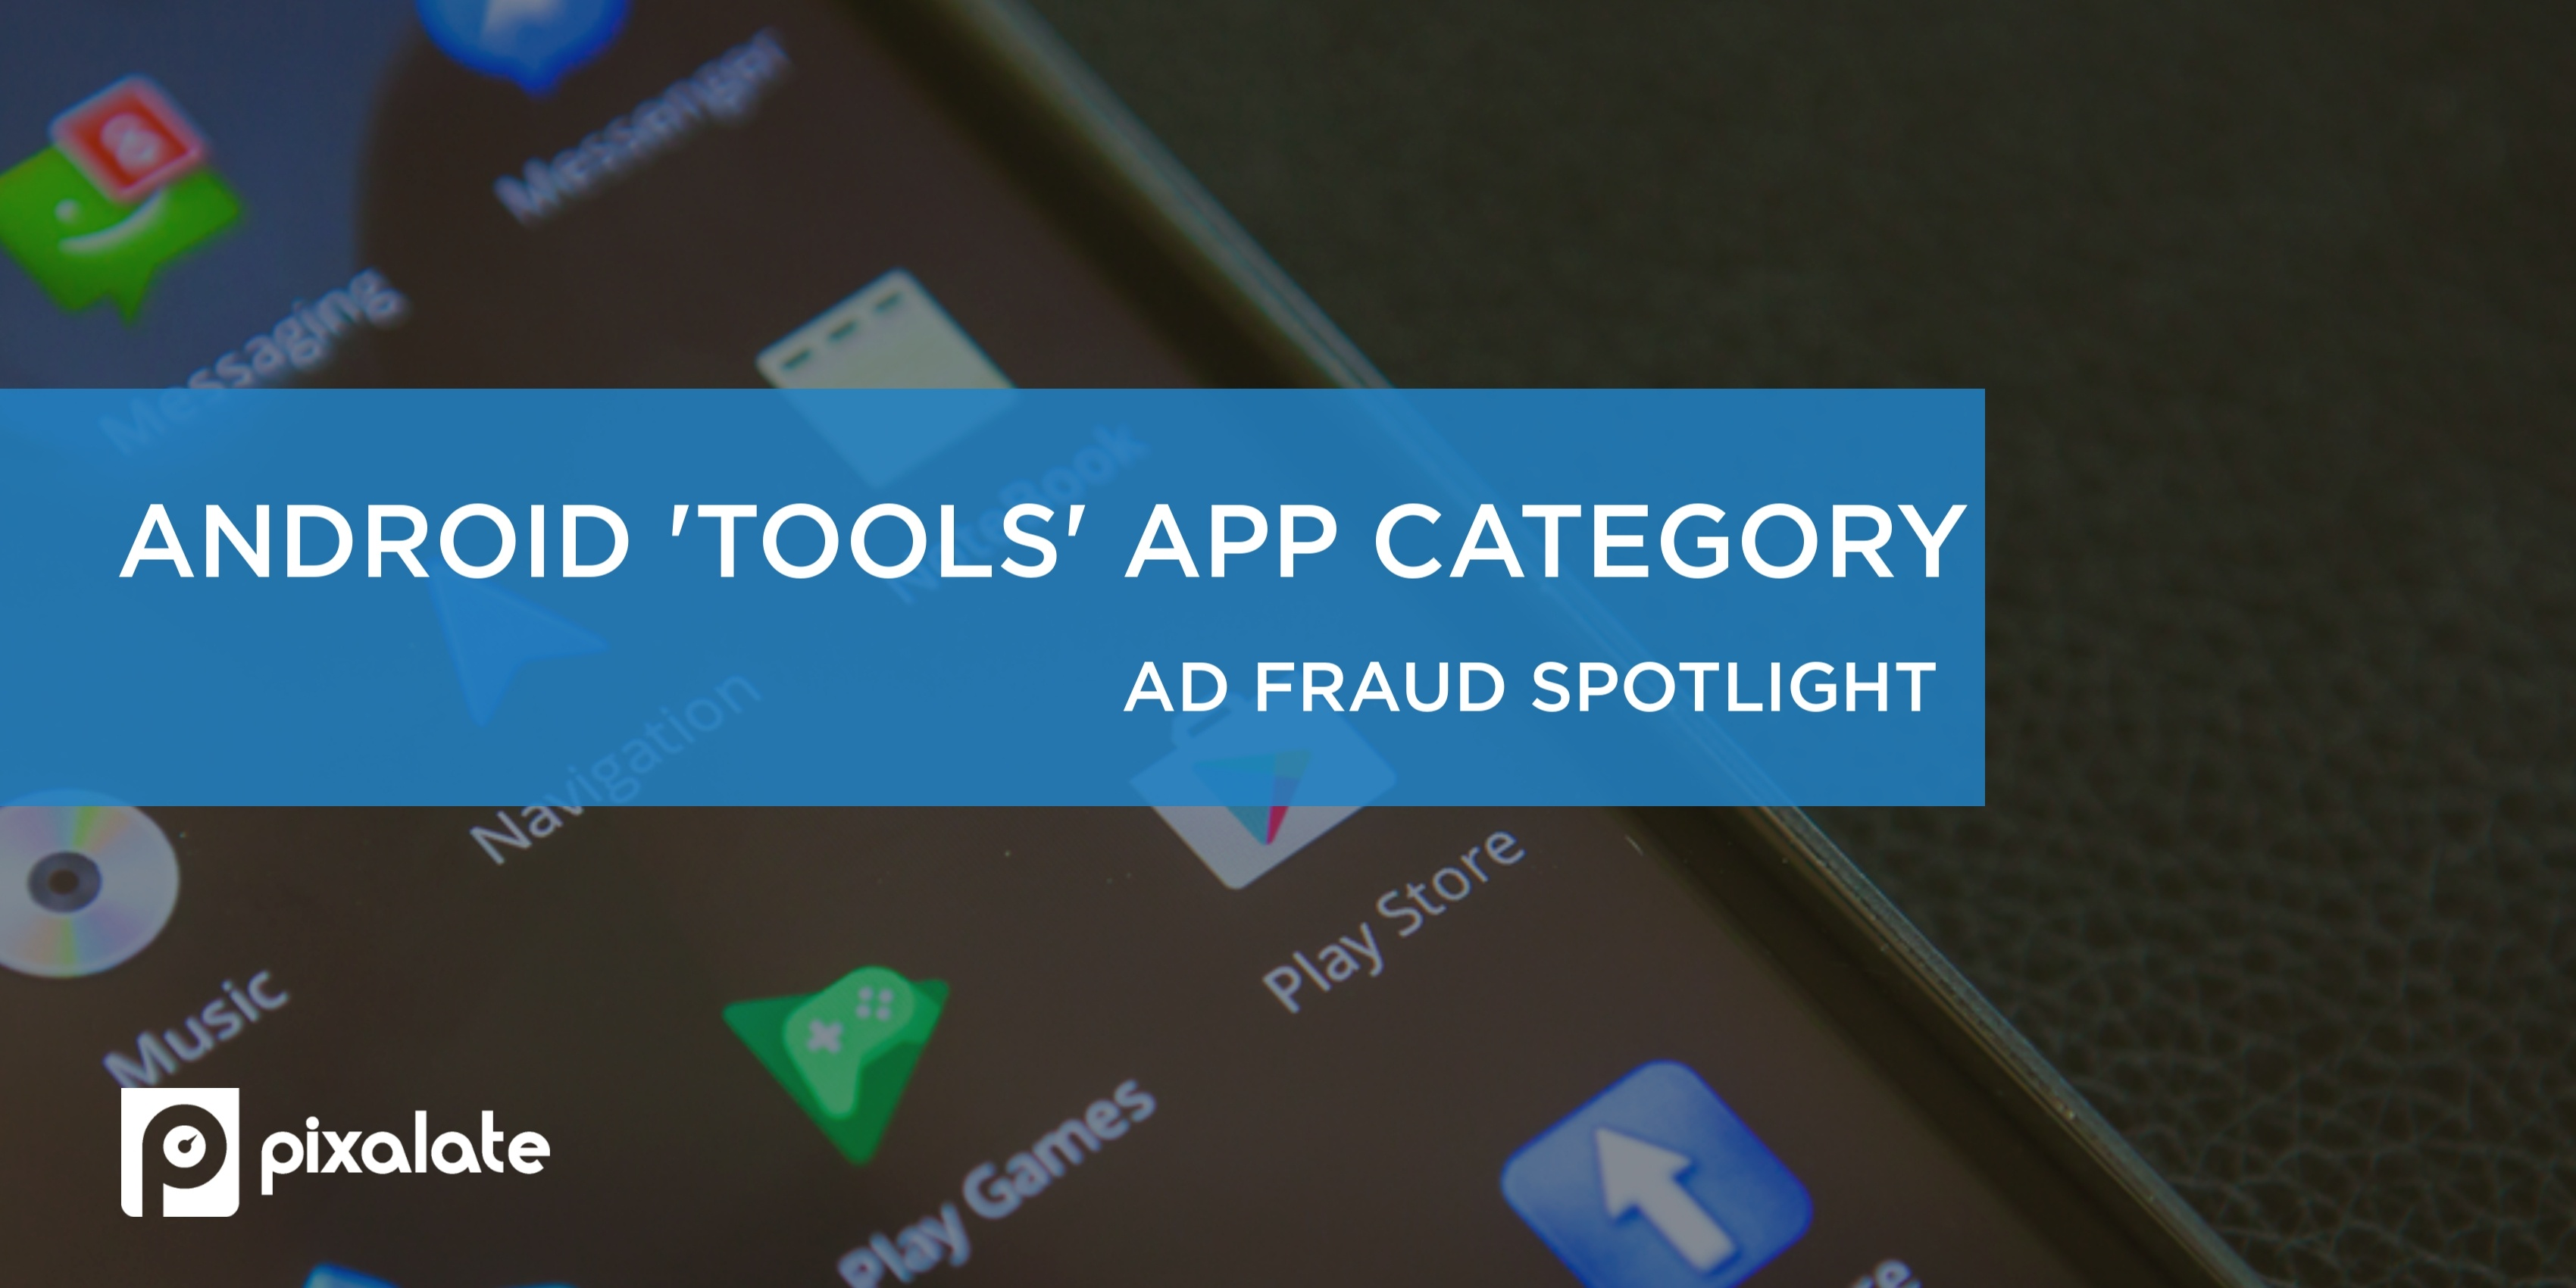 mobile-app-ad-fraud-android-tools-category (1)